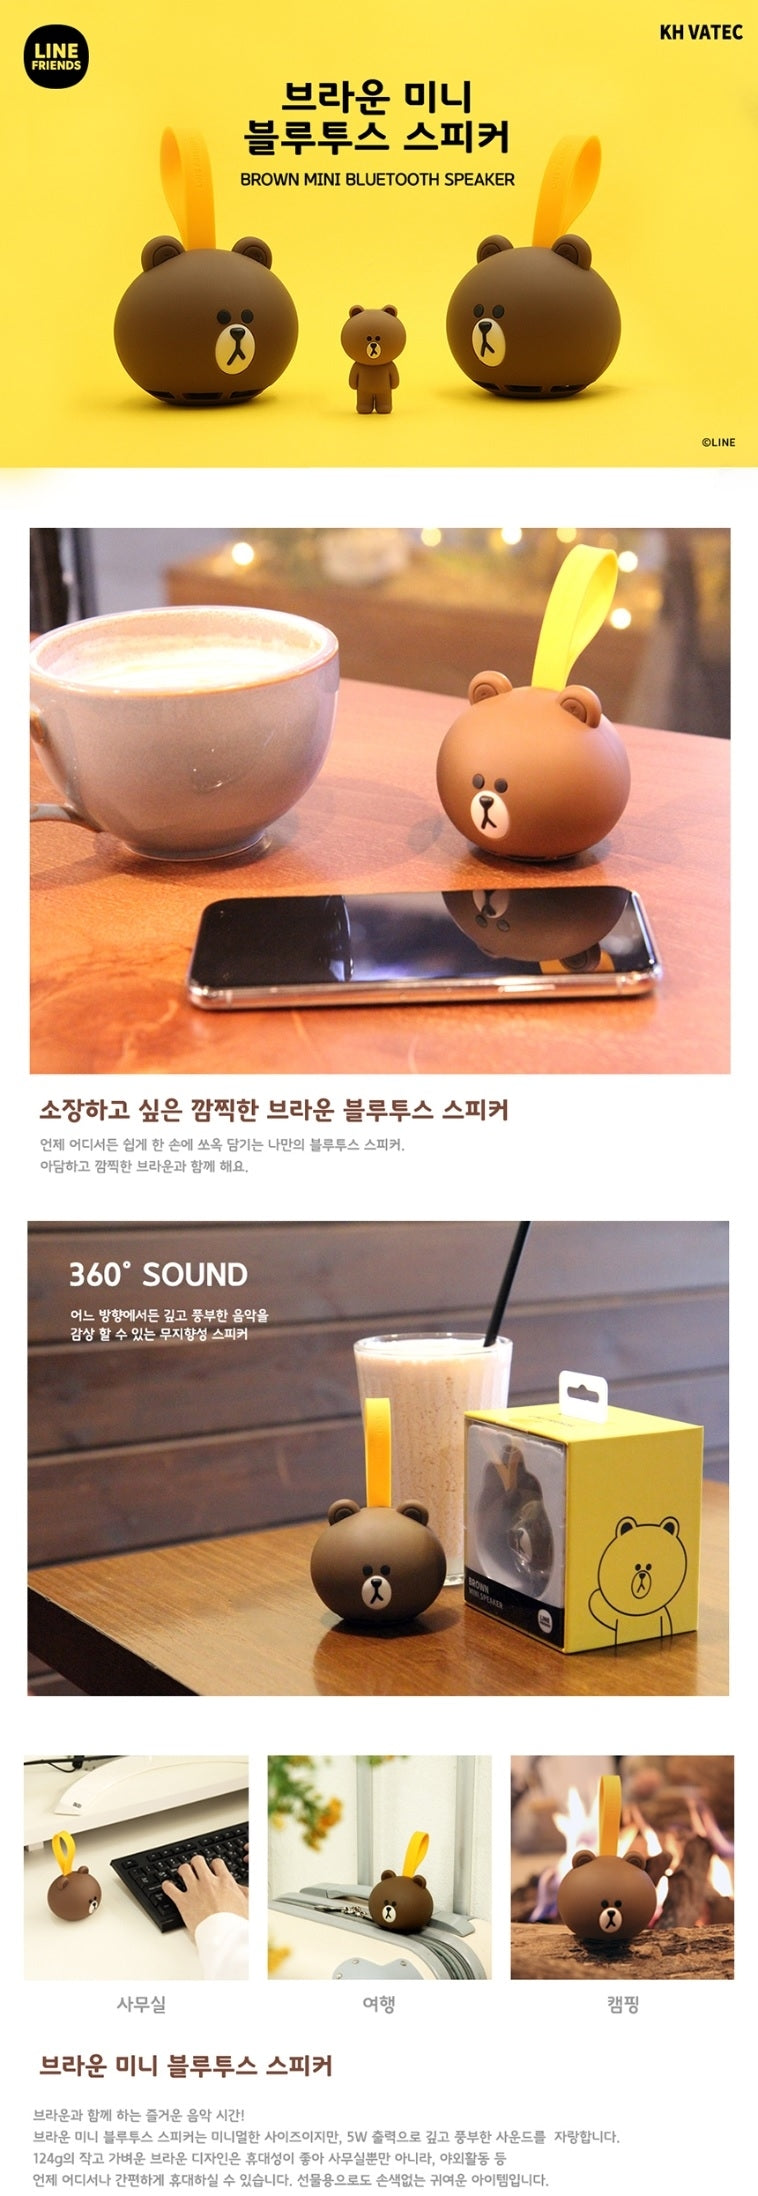 [LINE FRIENDS] Brown Mini Bluetooth Speaker